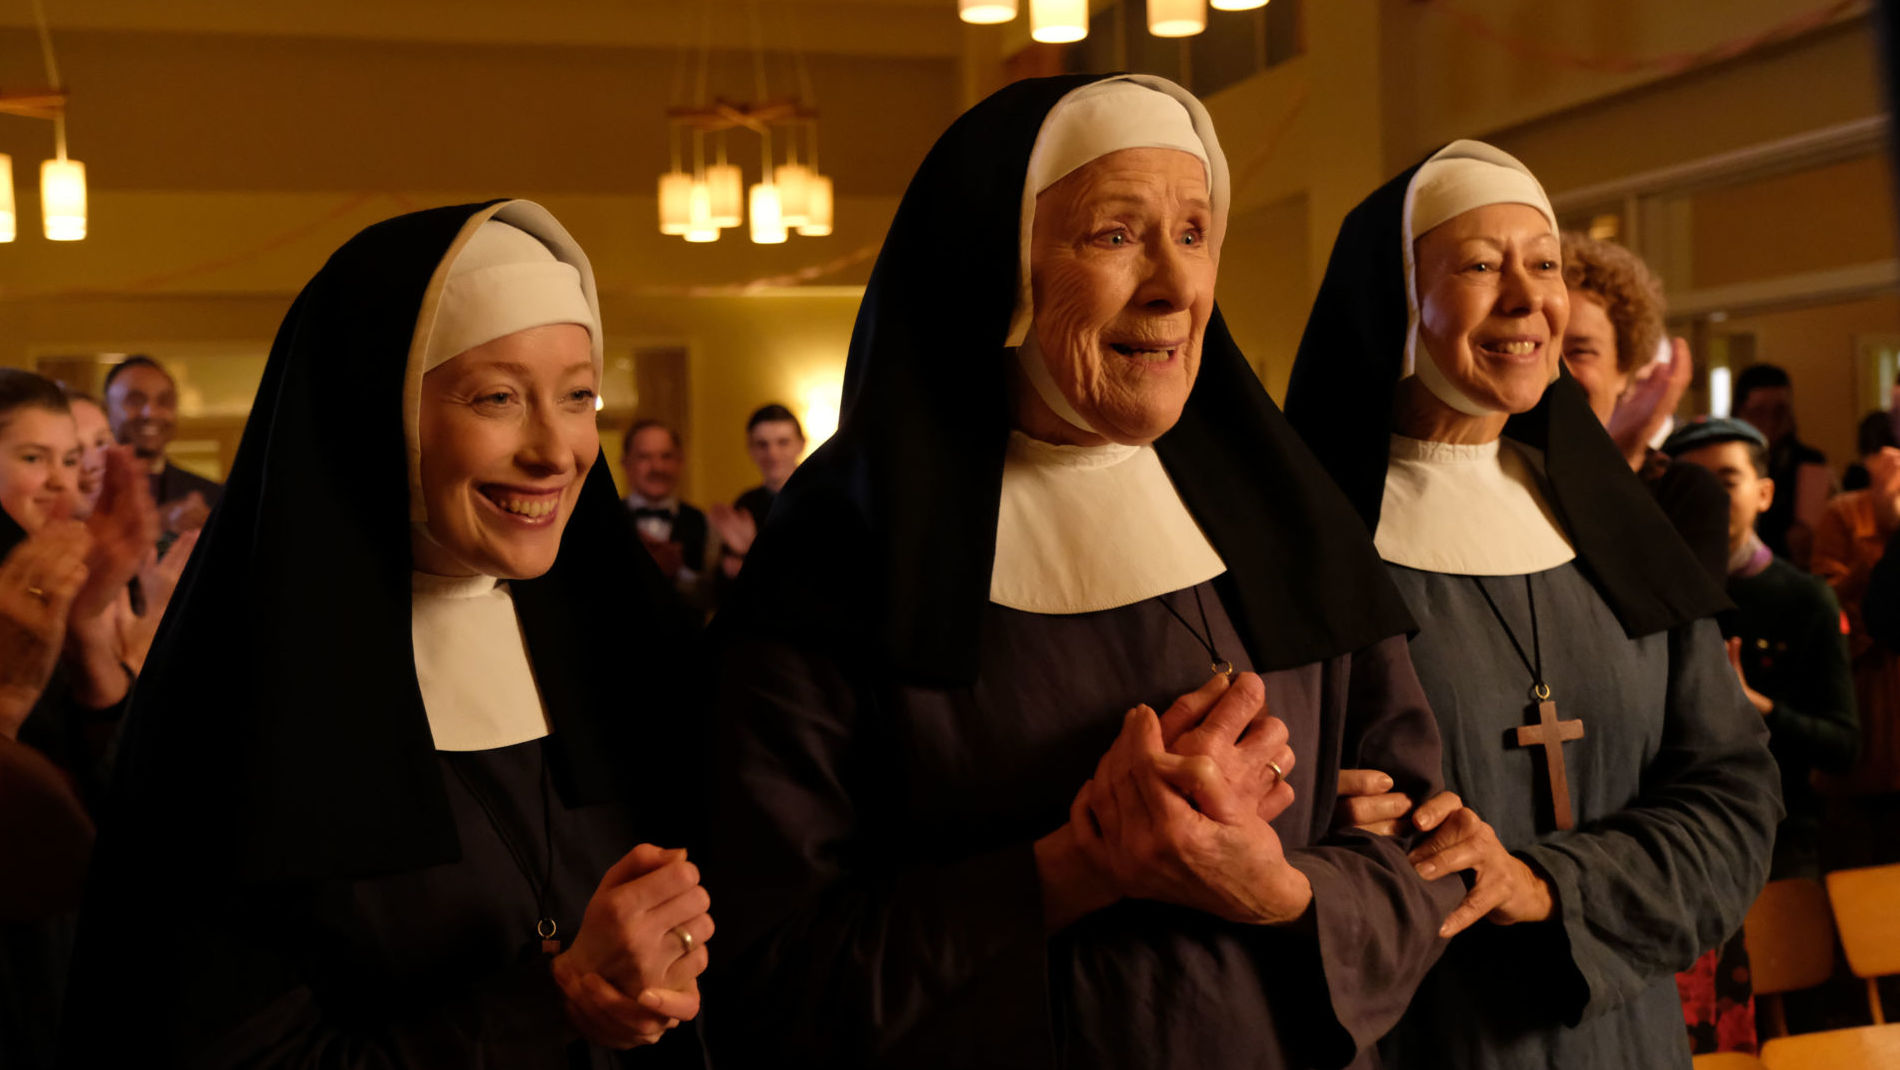 Call the Midwife Season 7 Episode 8 finale, R to L: Sister Monica Joan (JUDY PARFITT), Sister Julienne (JENNY AGUTTER), Sister Winifred (Victoria Yeates).